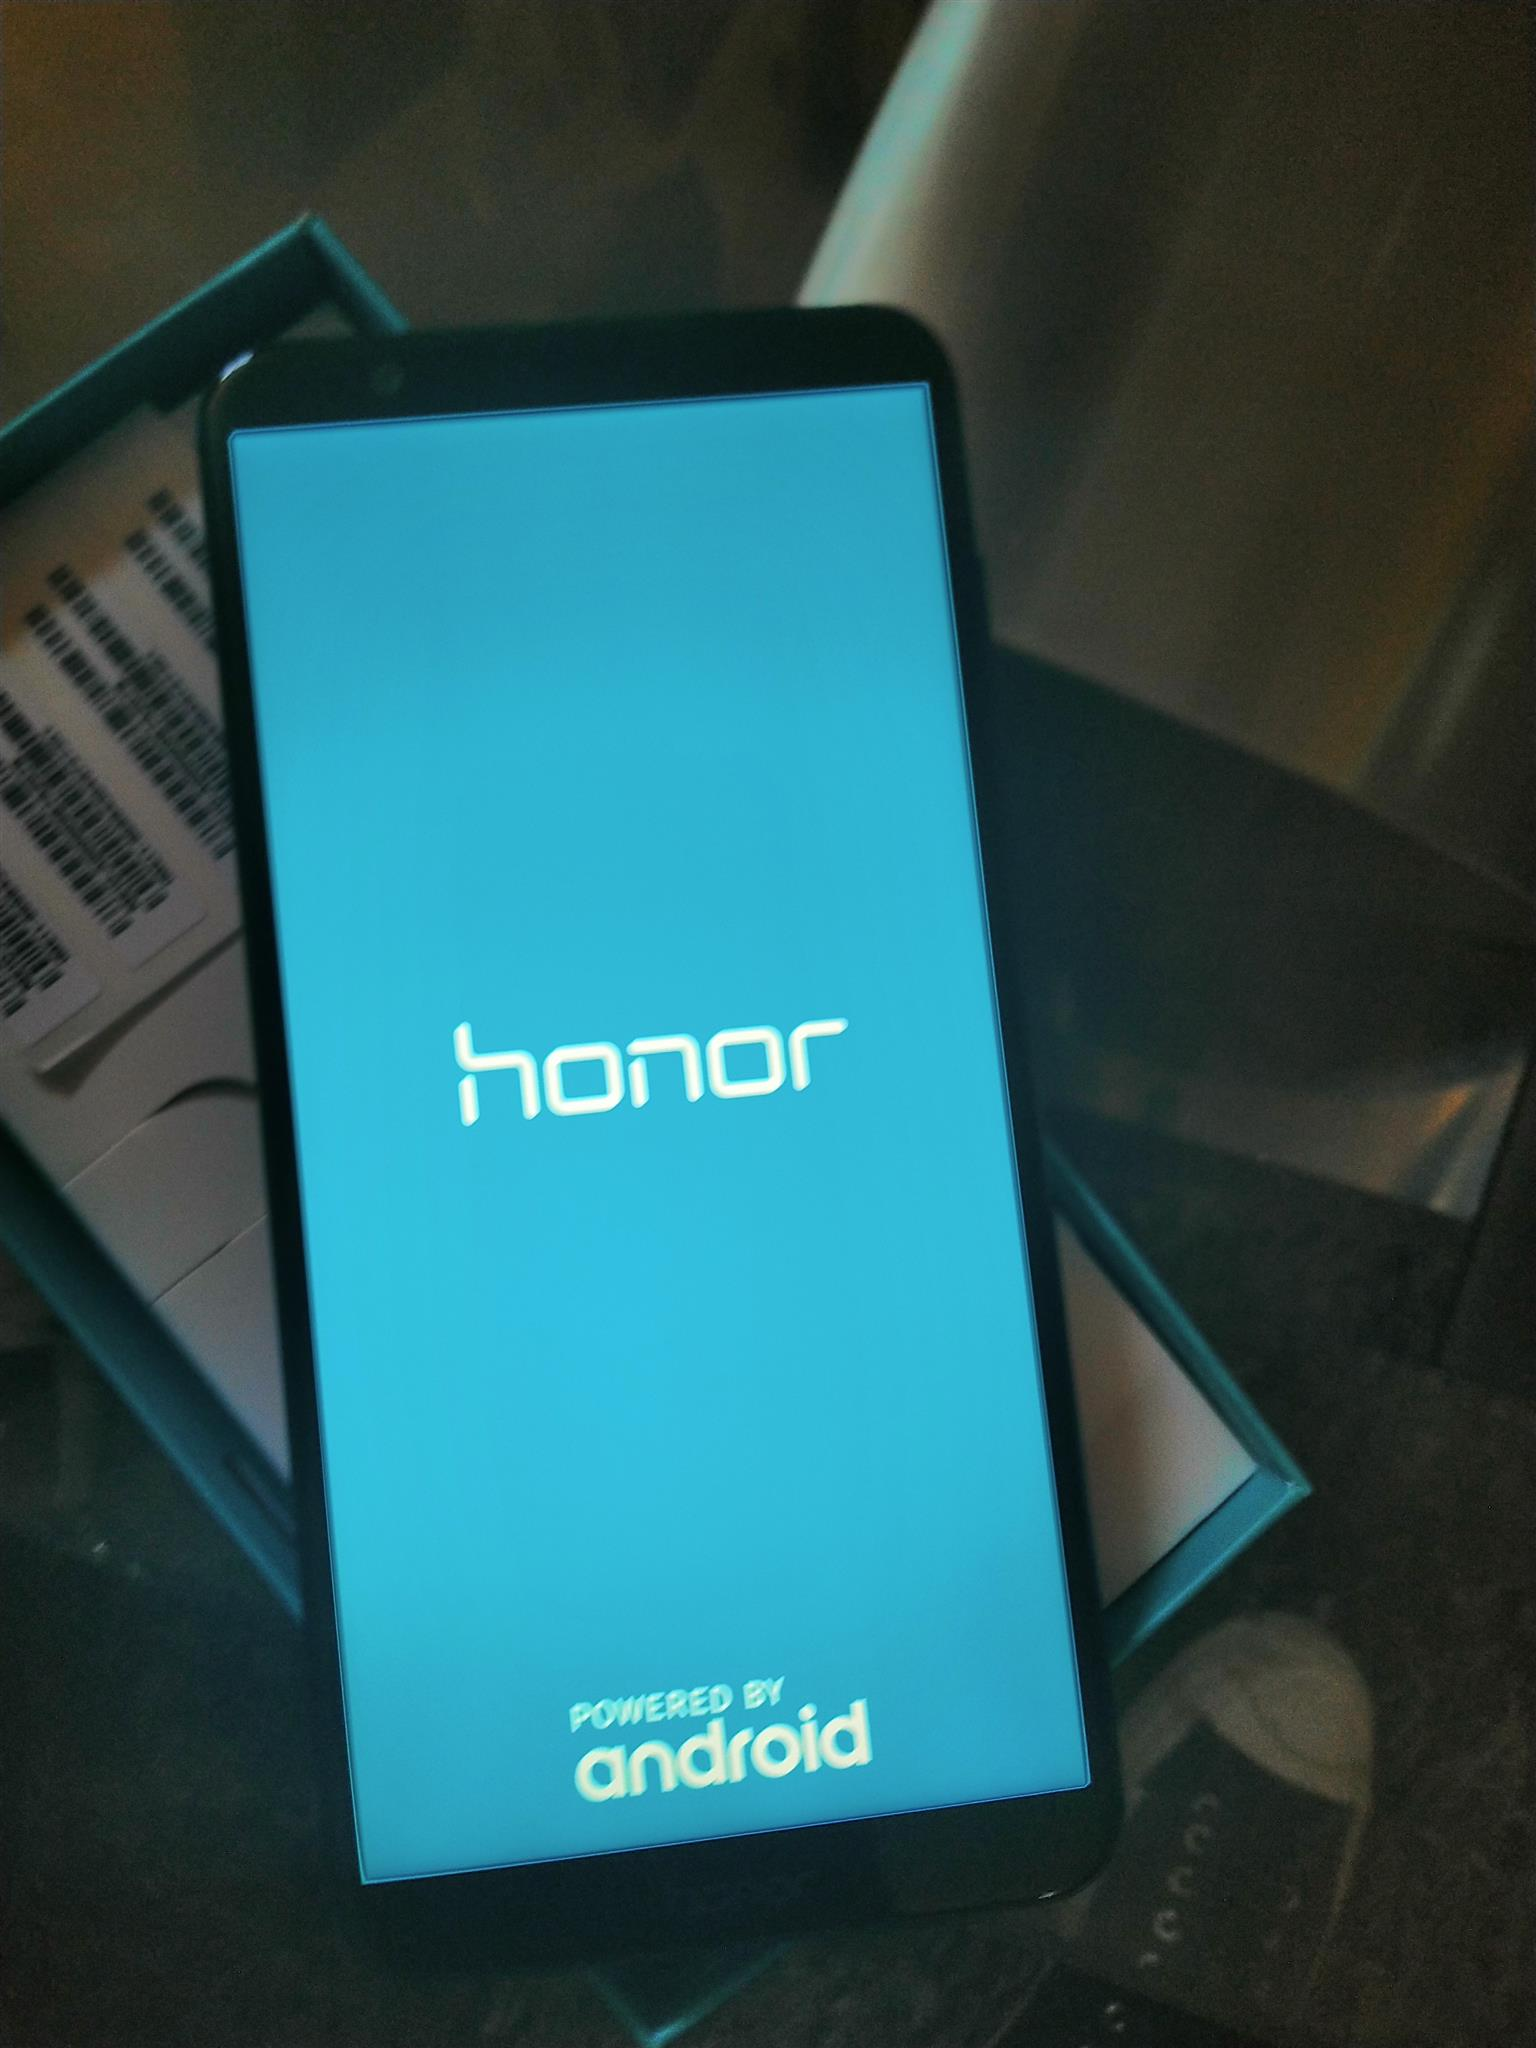 New Huawei Honor 7x. 5.99 inch screen. Waterproof with gorilla glass